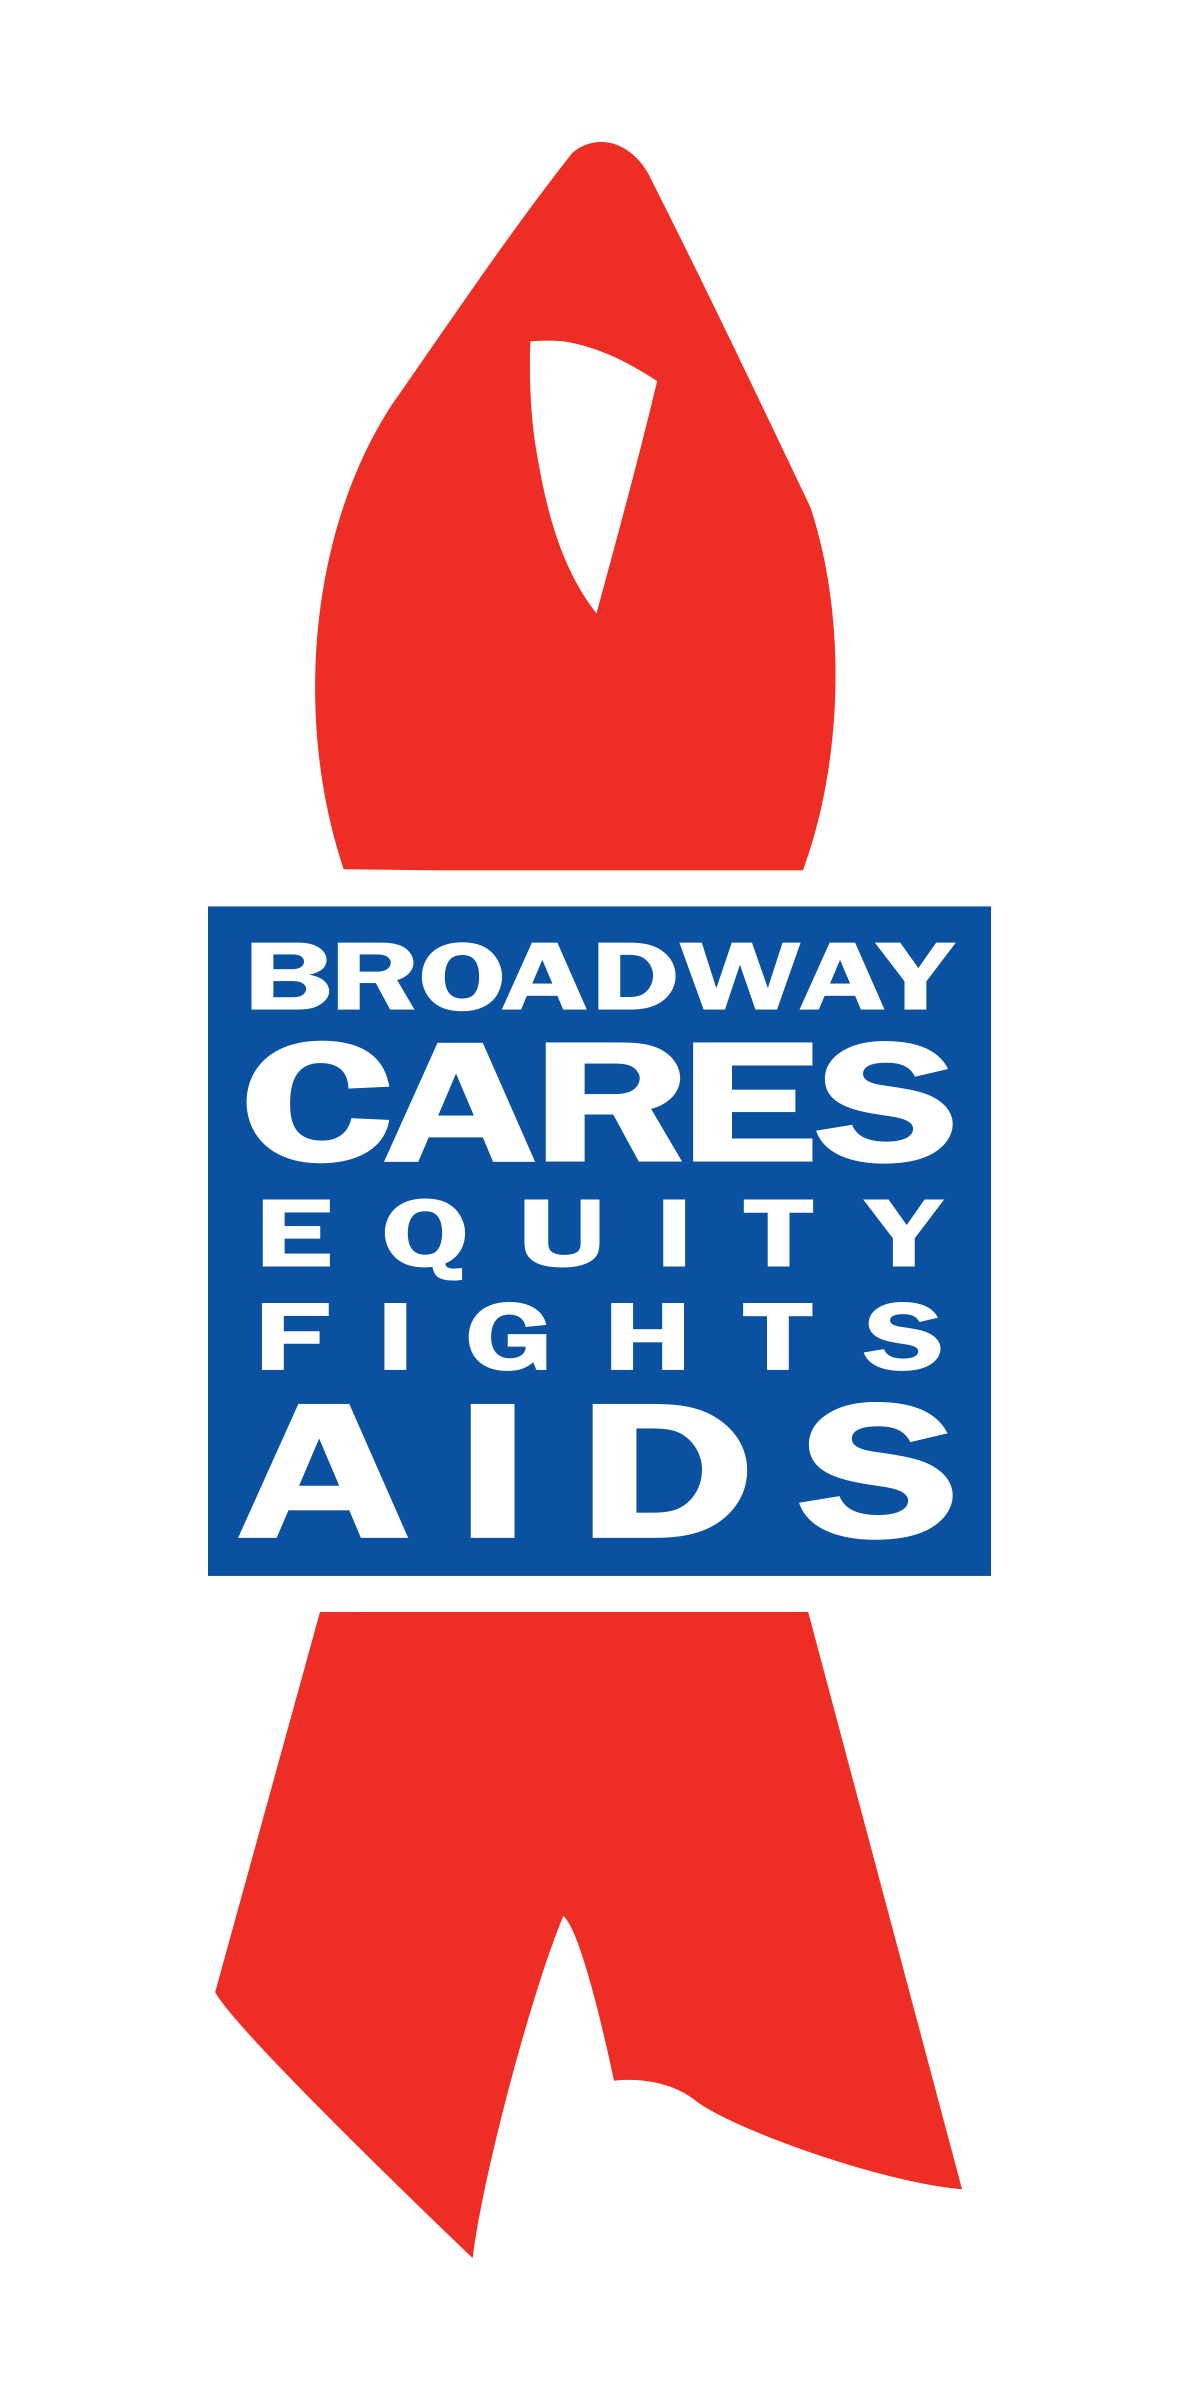 BroadwayCares_logo_2017.png